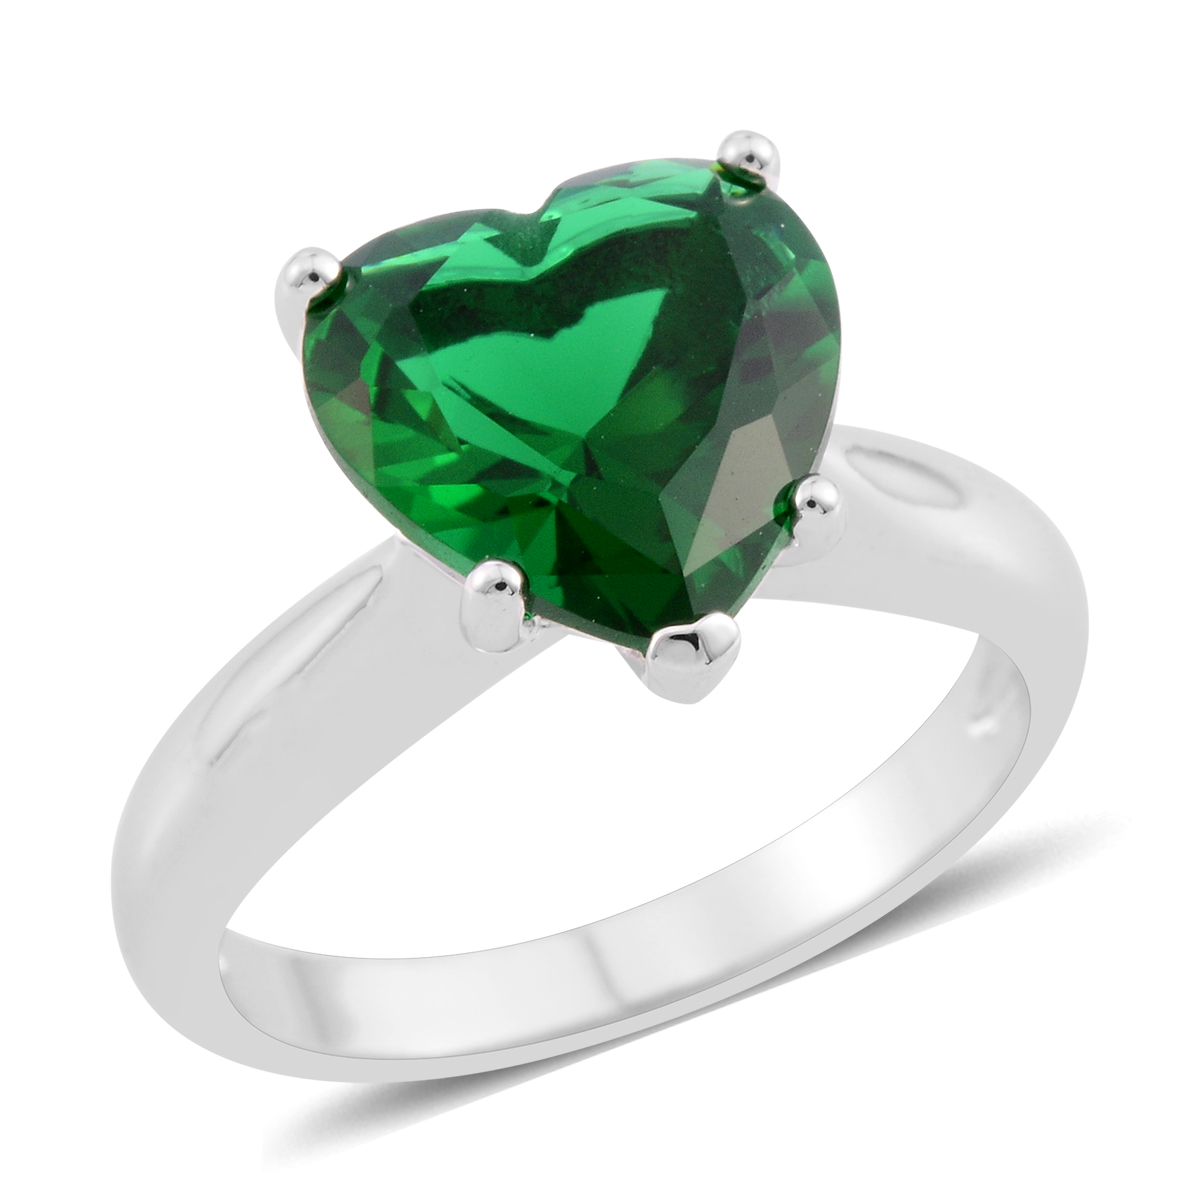 4942d77f006ab Simulated Emerald Silvertone Heart Ring (Size 5.5) TGW 5.38 cts.